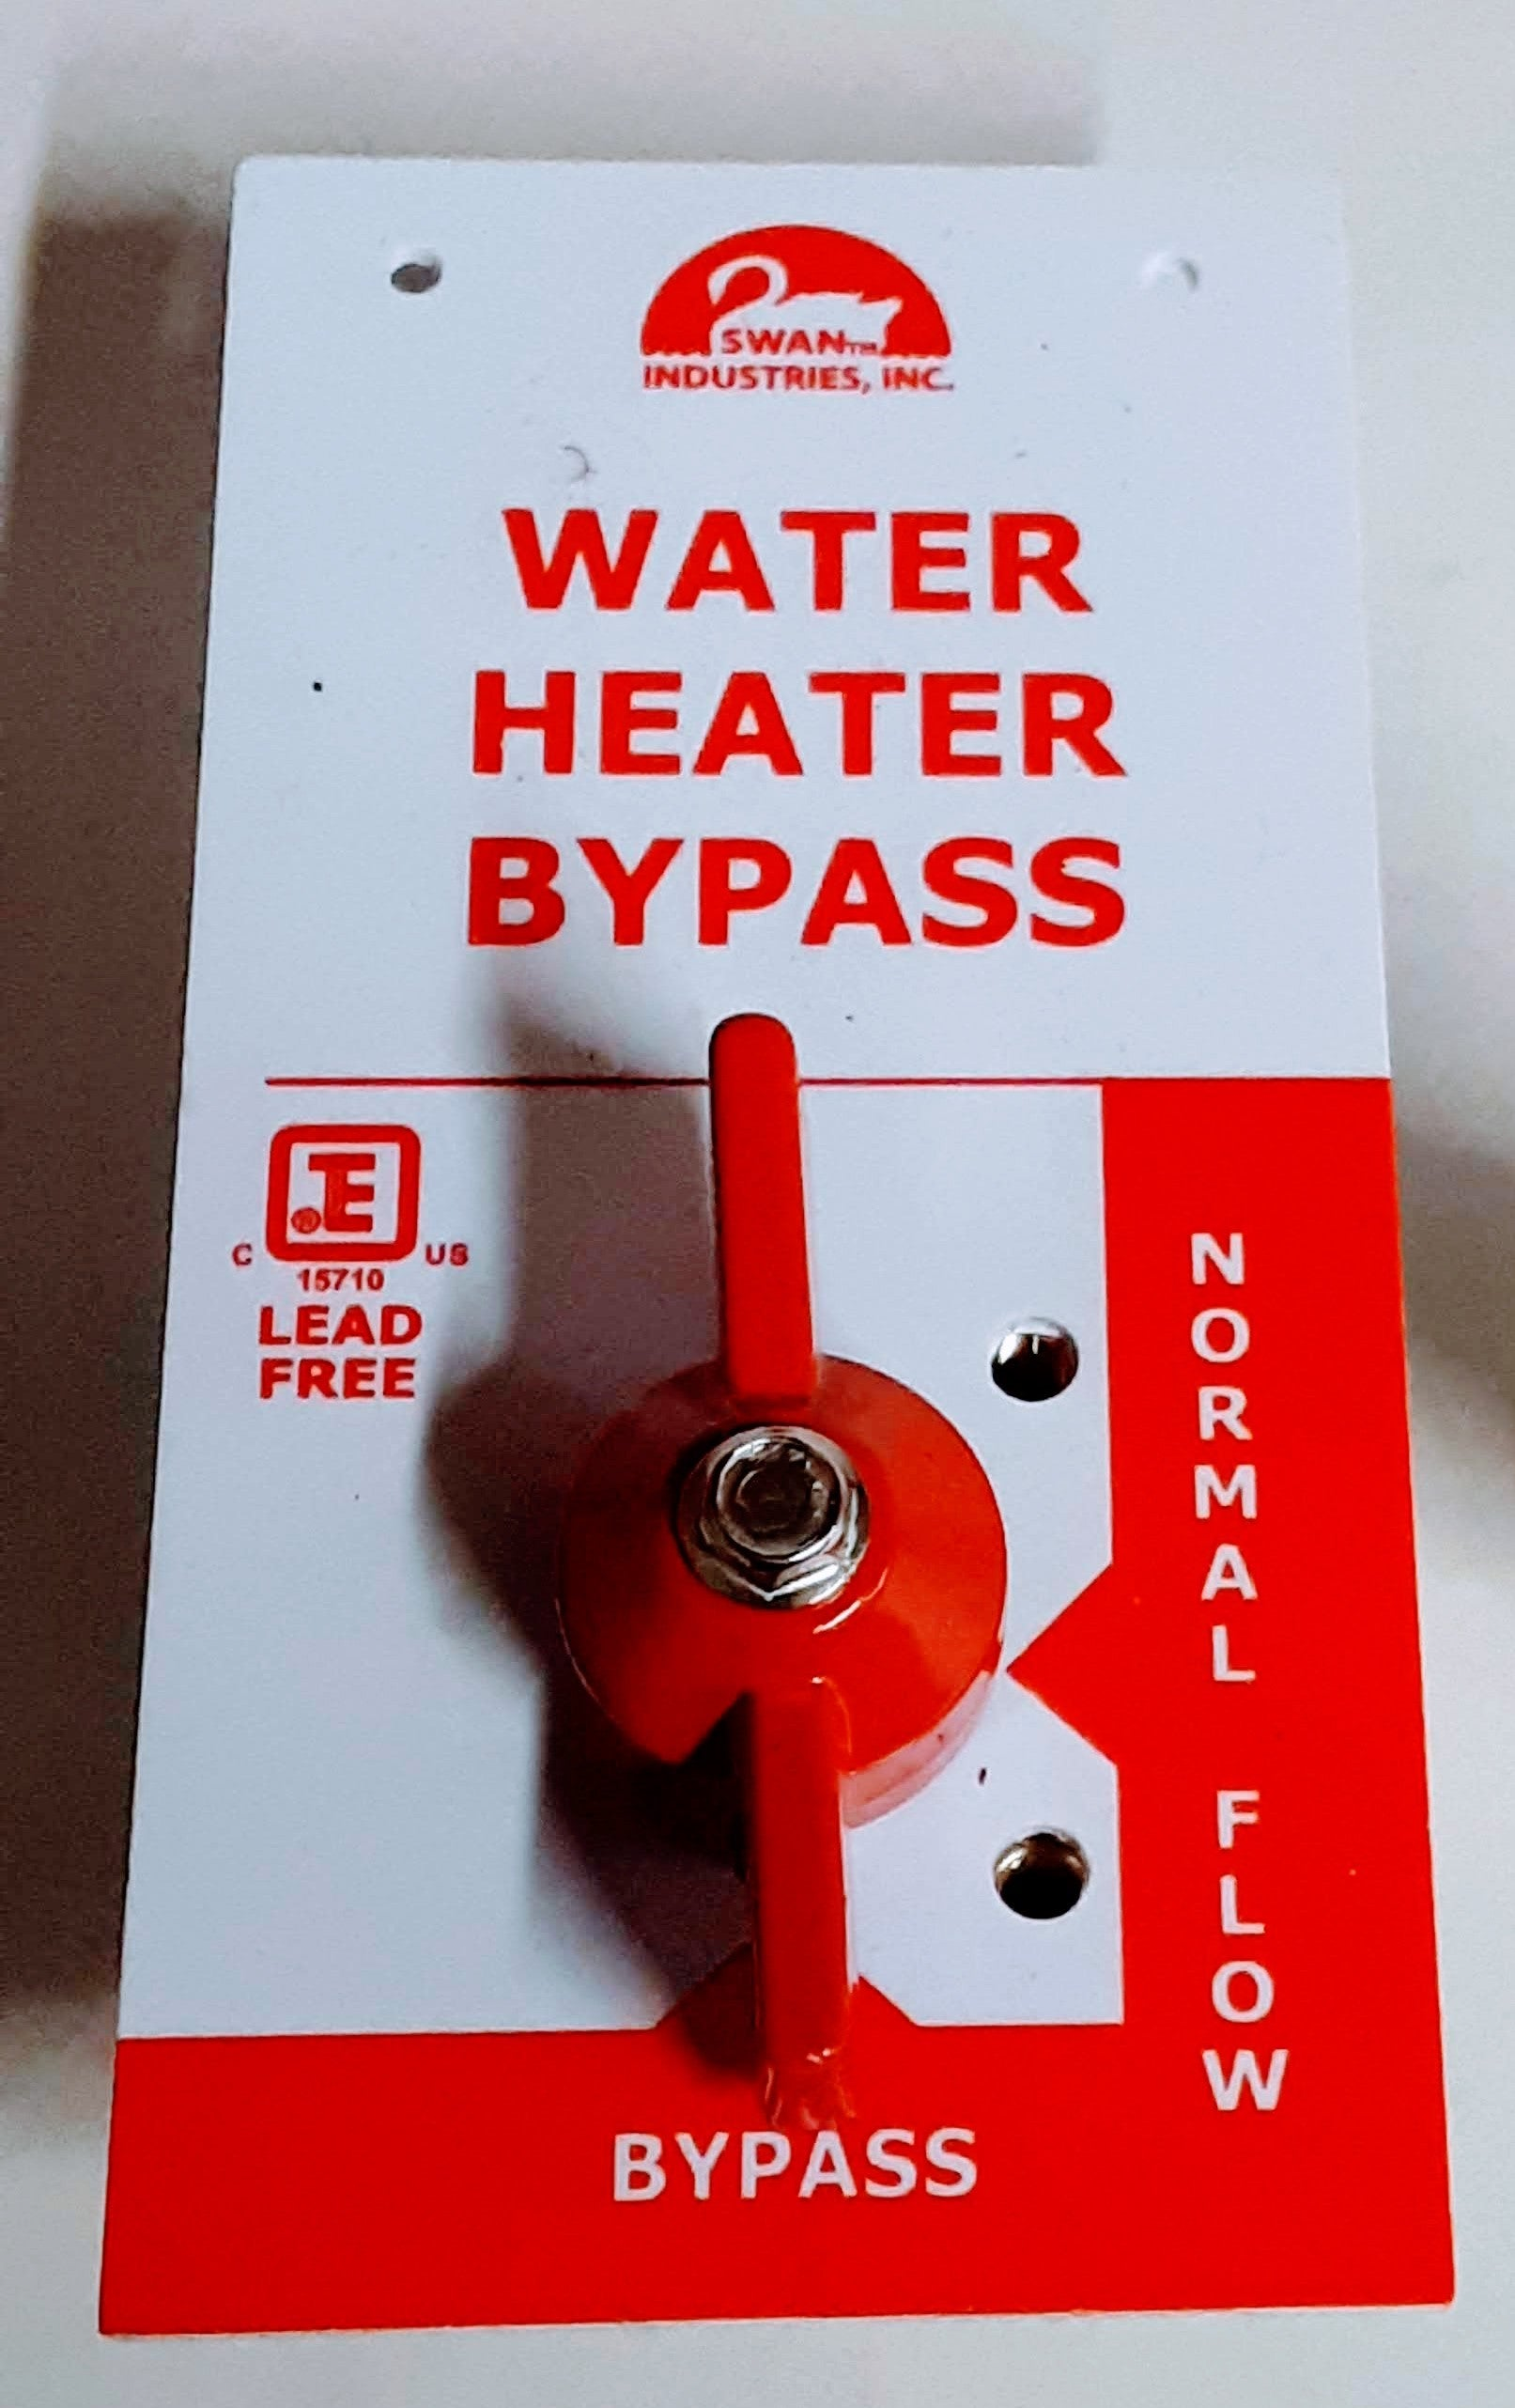 Hot Water Heater By Pass Valve Manual Guide